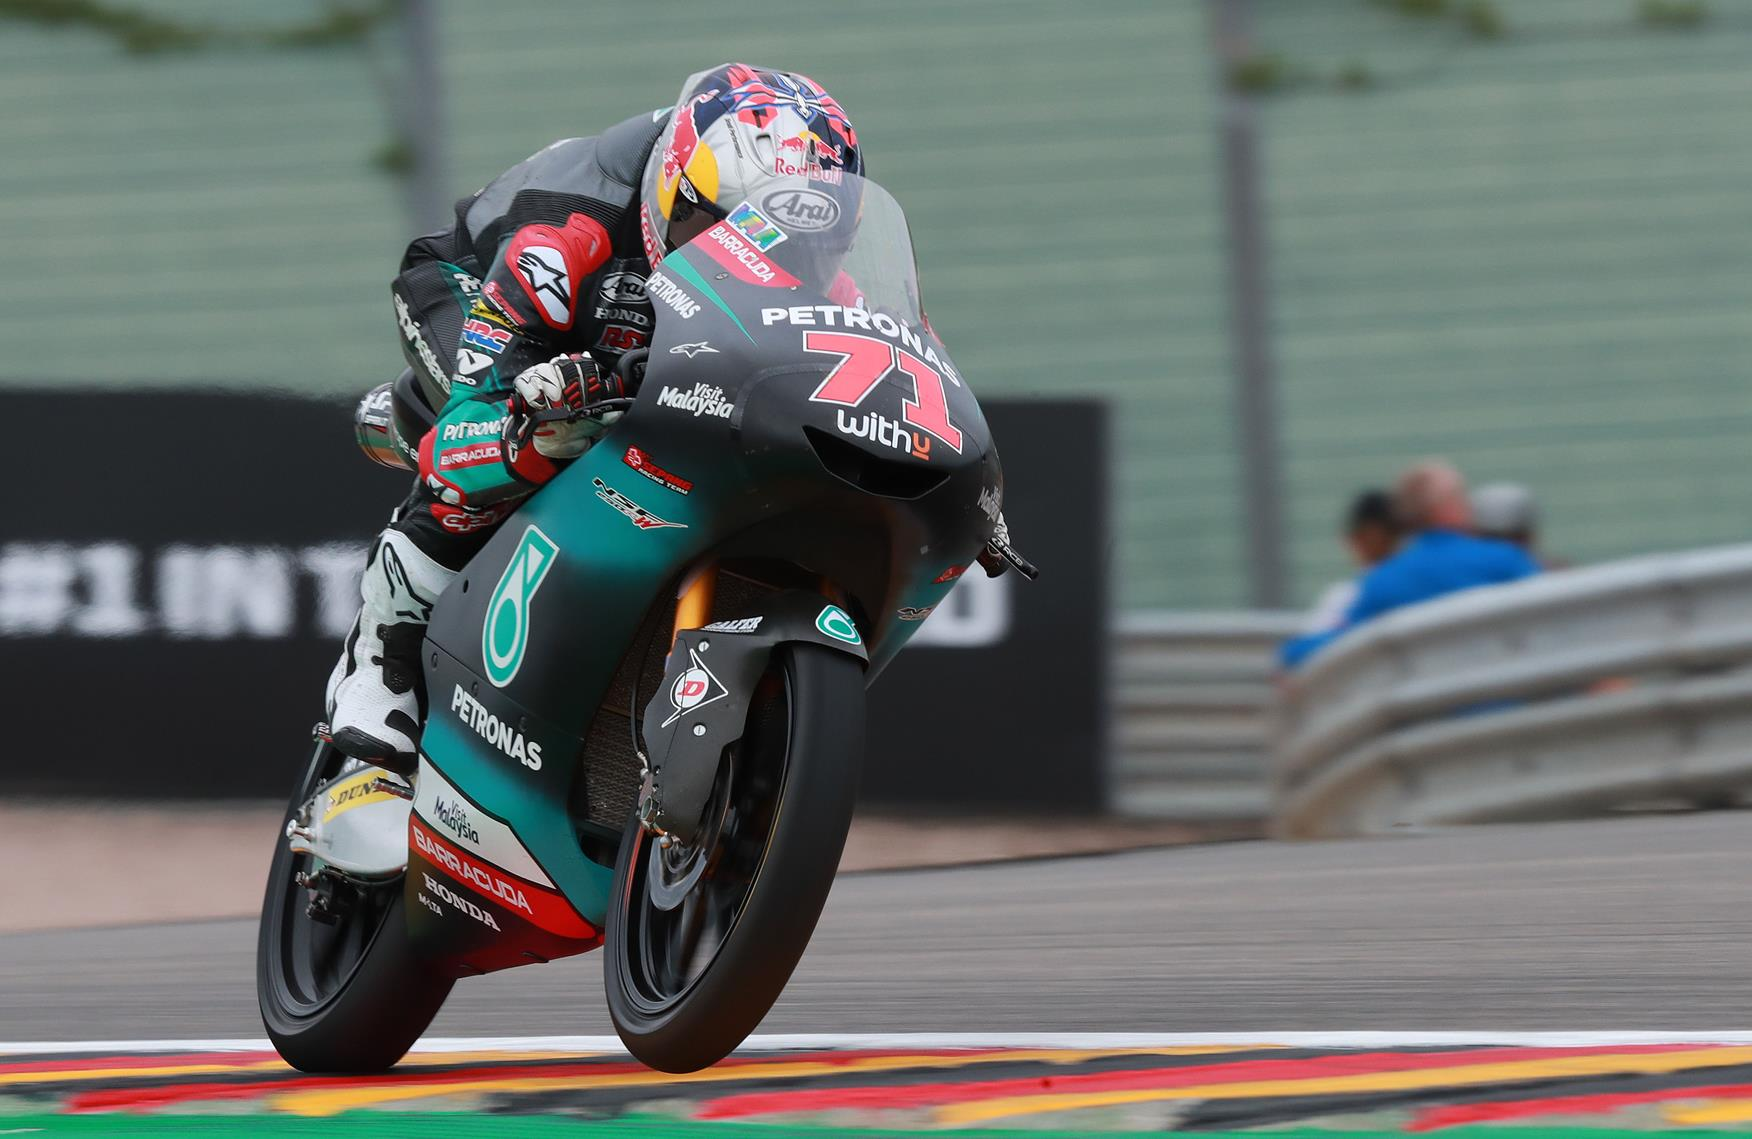 Sachsenring Moto3: Top 21 covered by less than a second at end of first day